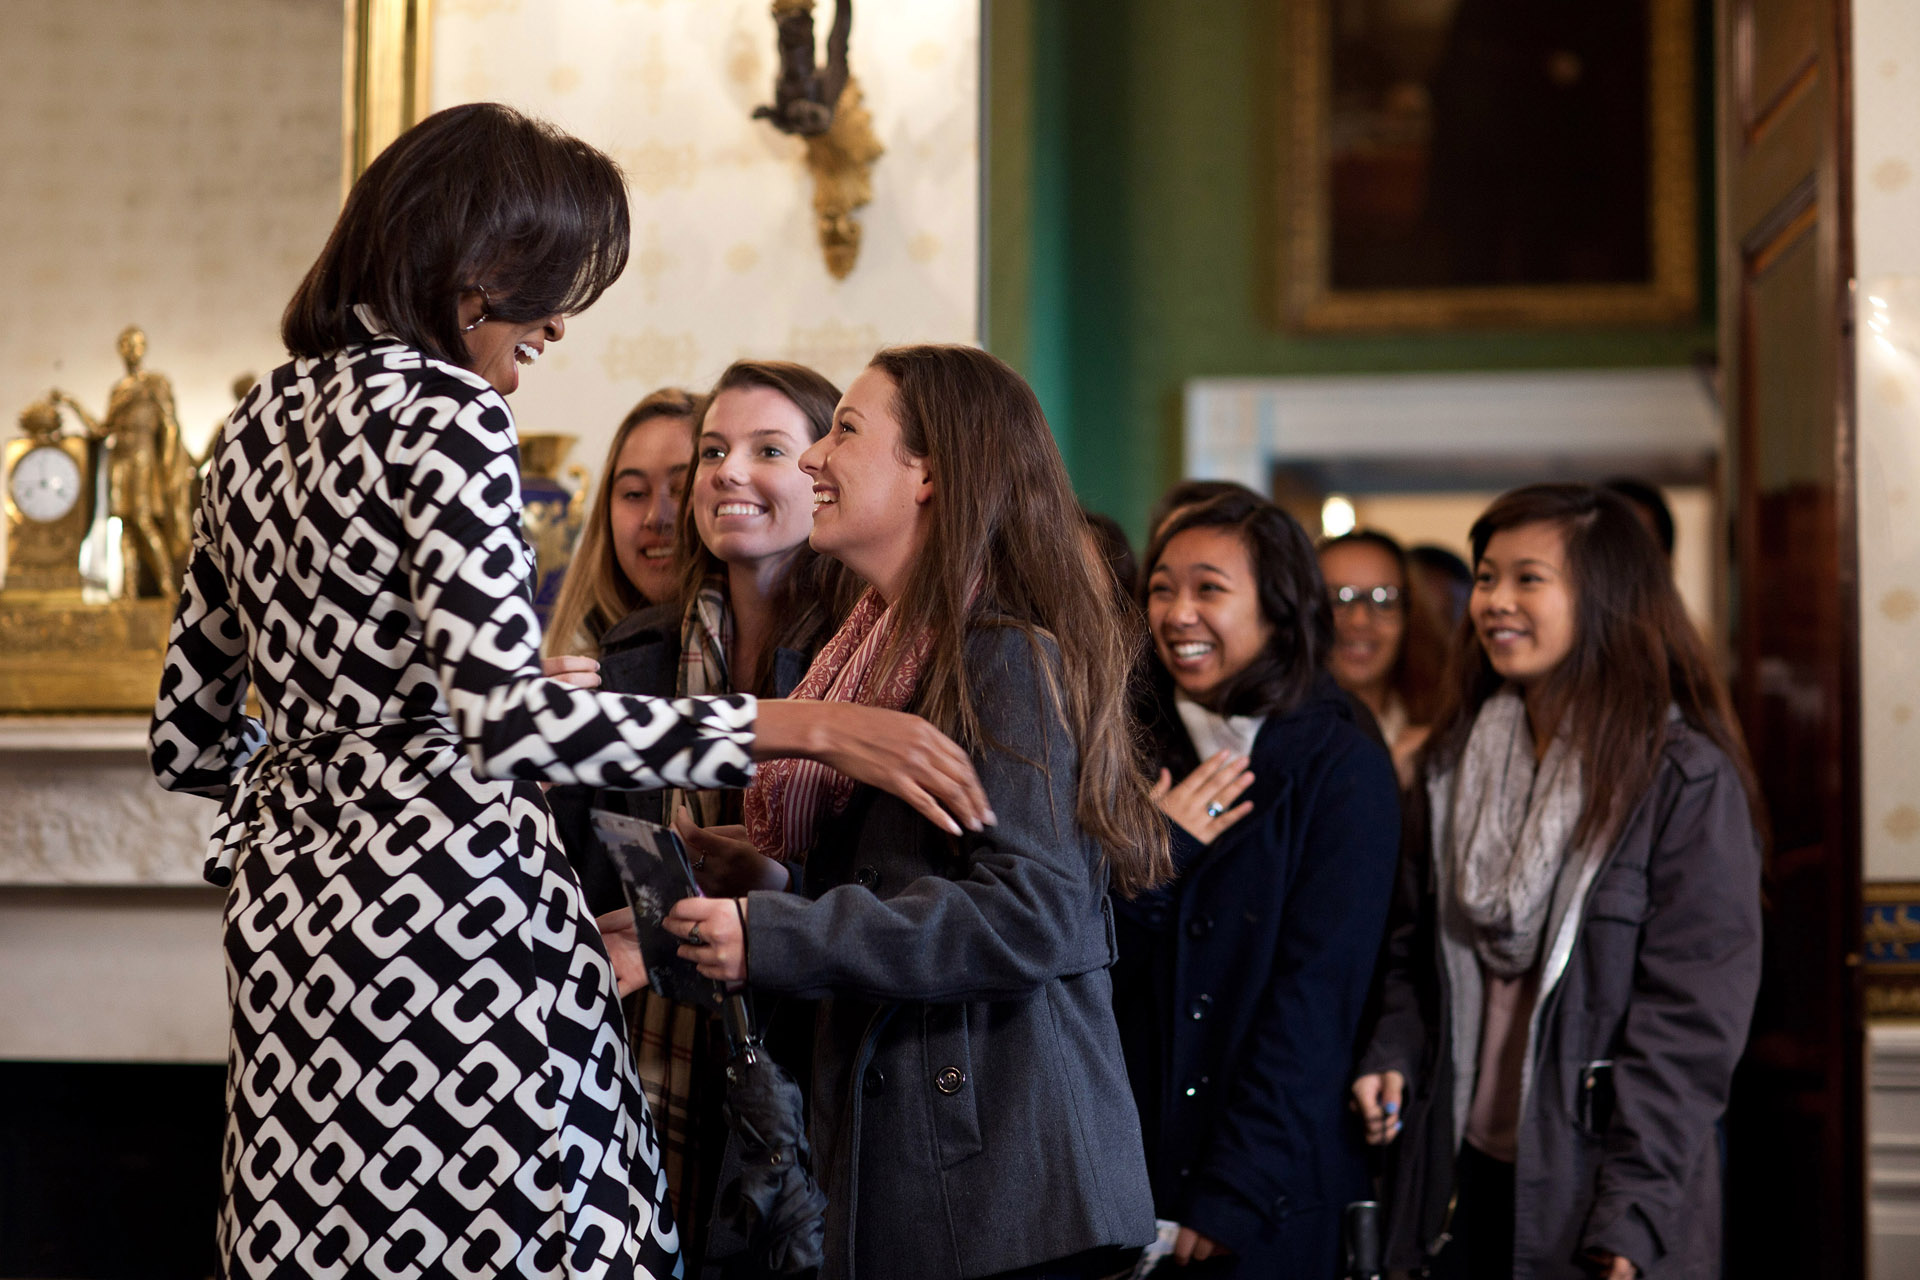 First Lady Michelle Obama Greets a Group of White House Visitors